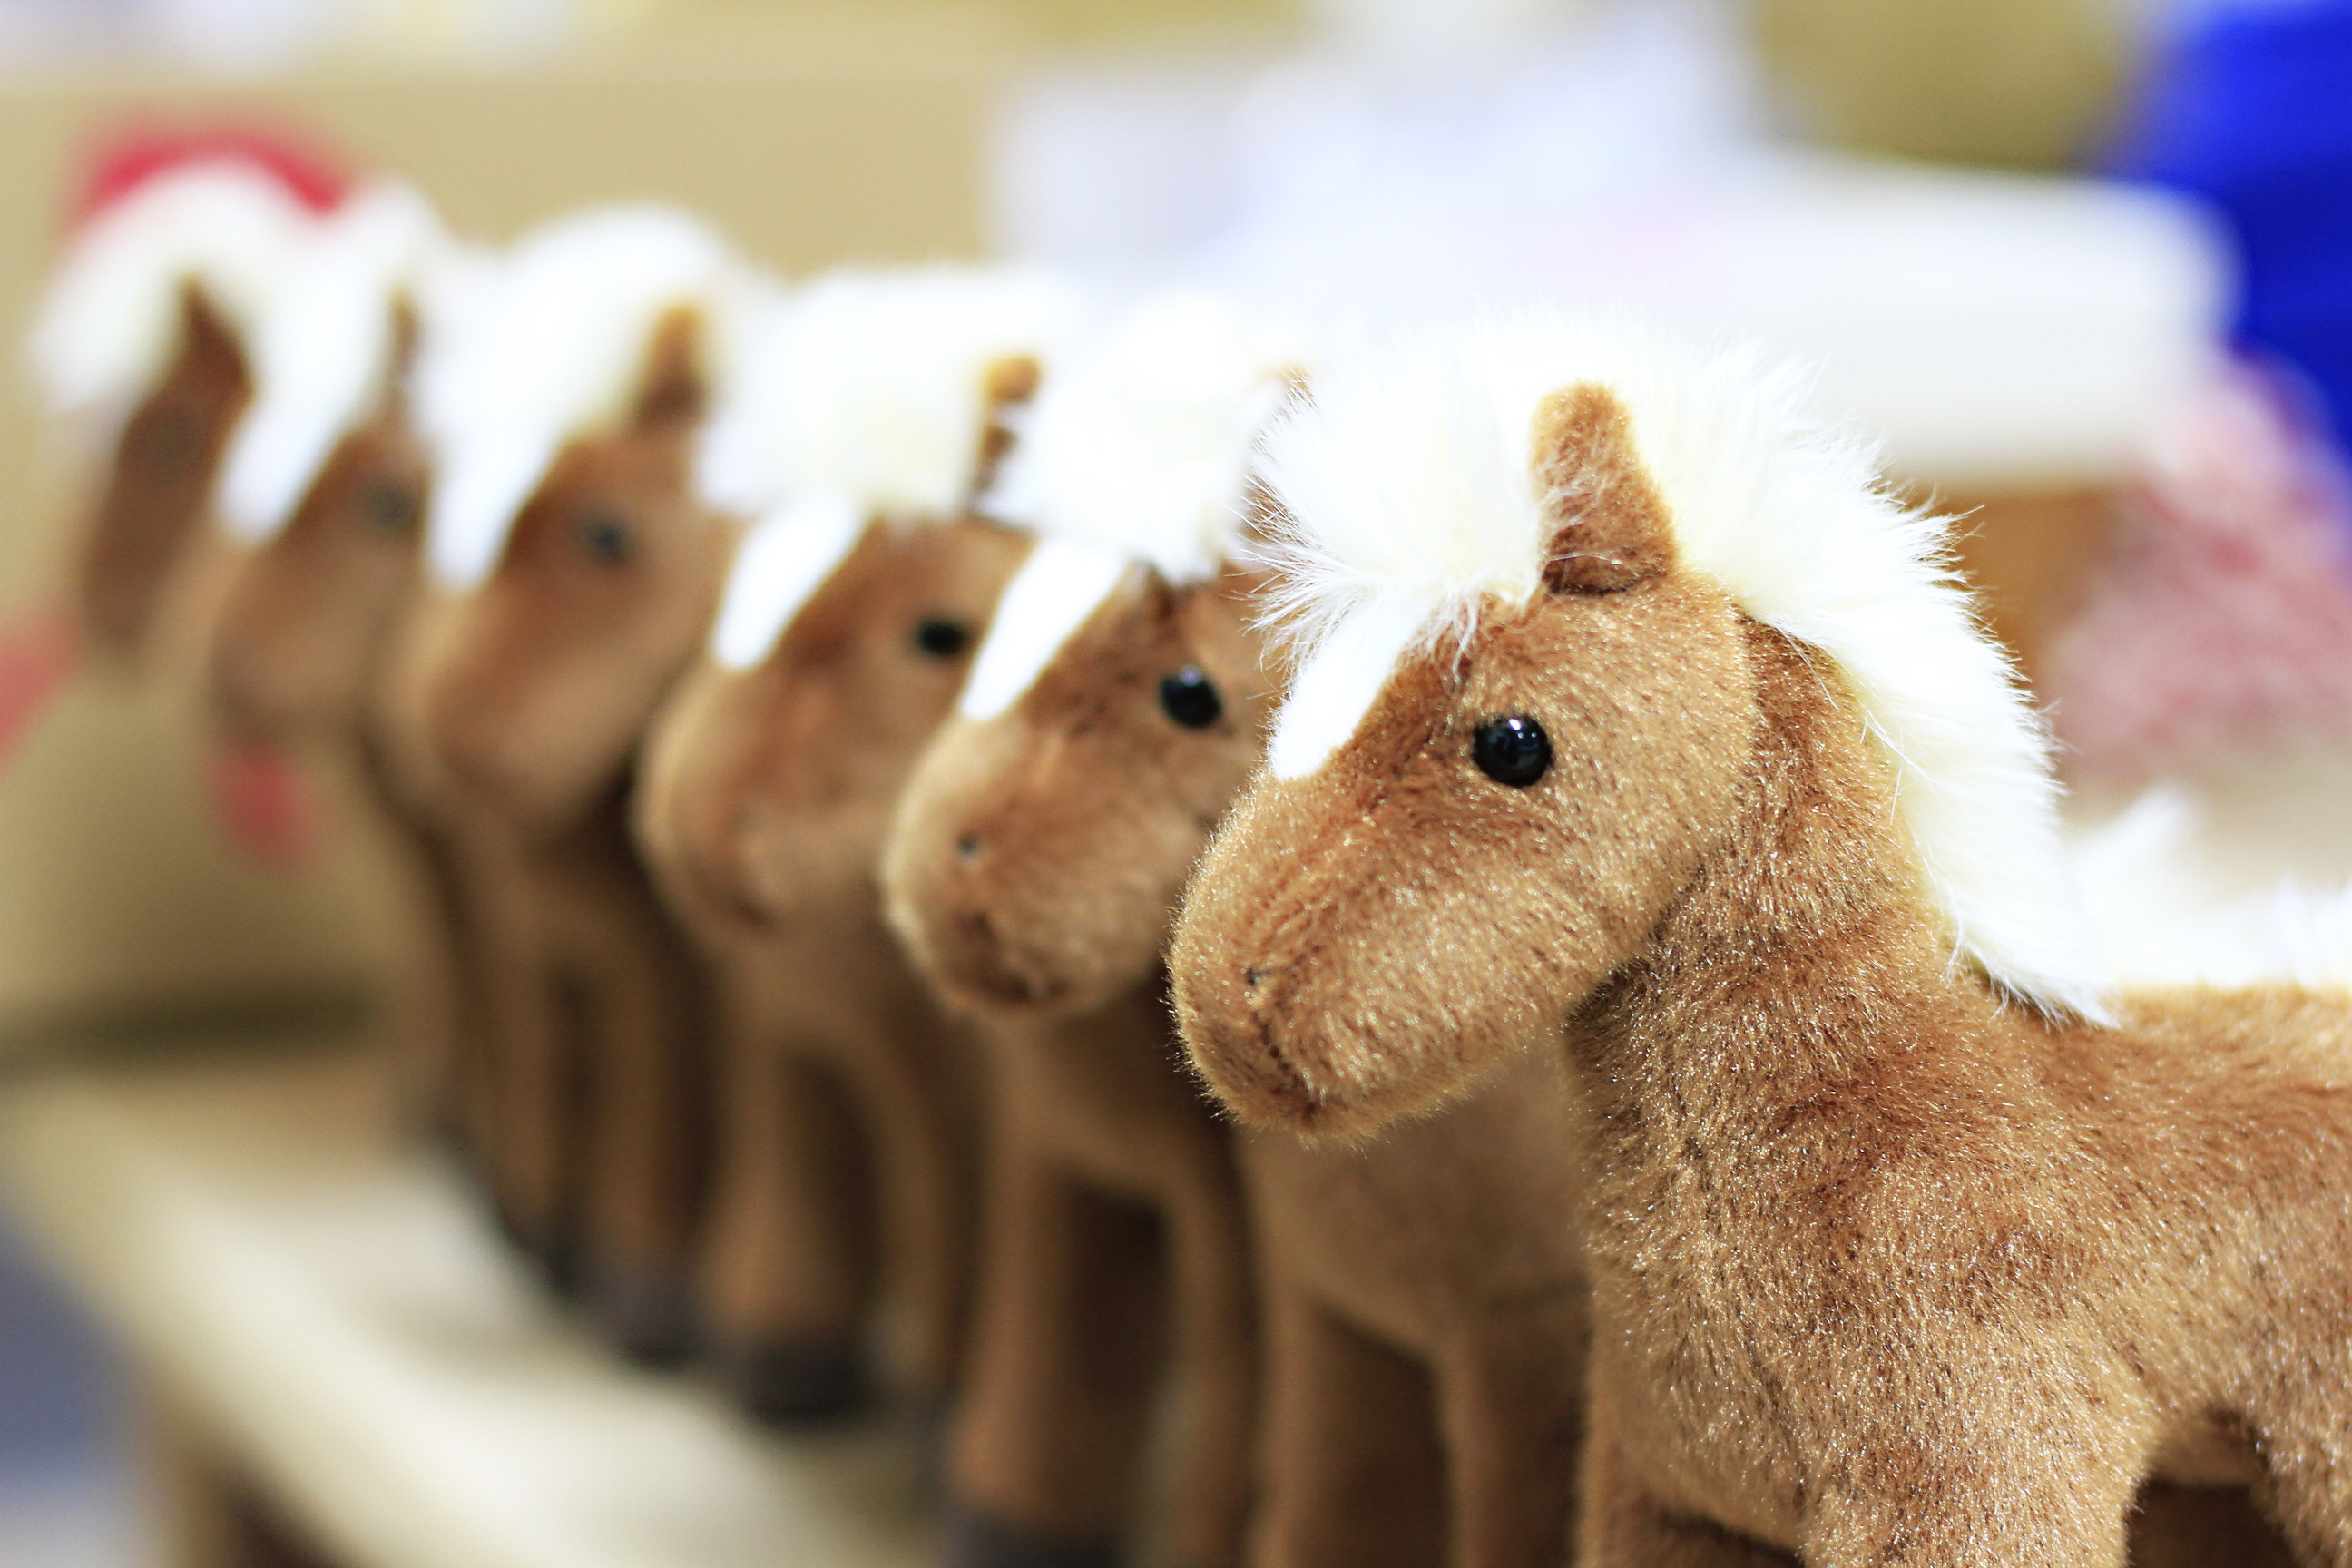 The June Dress of the Month box includes a plush horse via lilblueboo.com